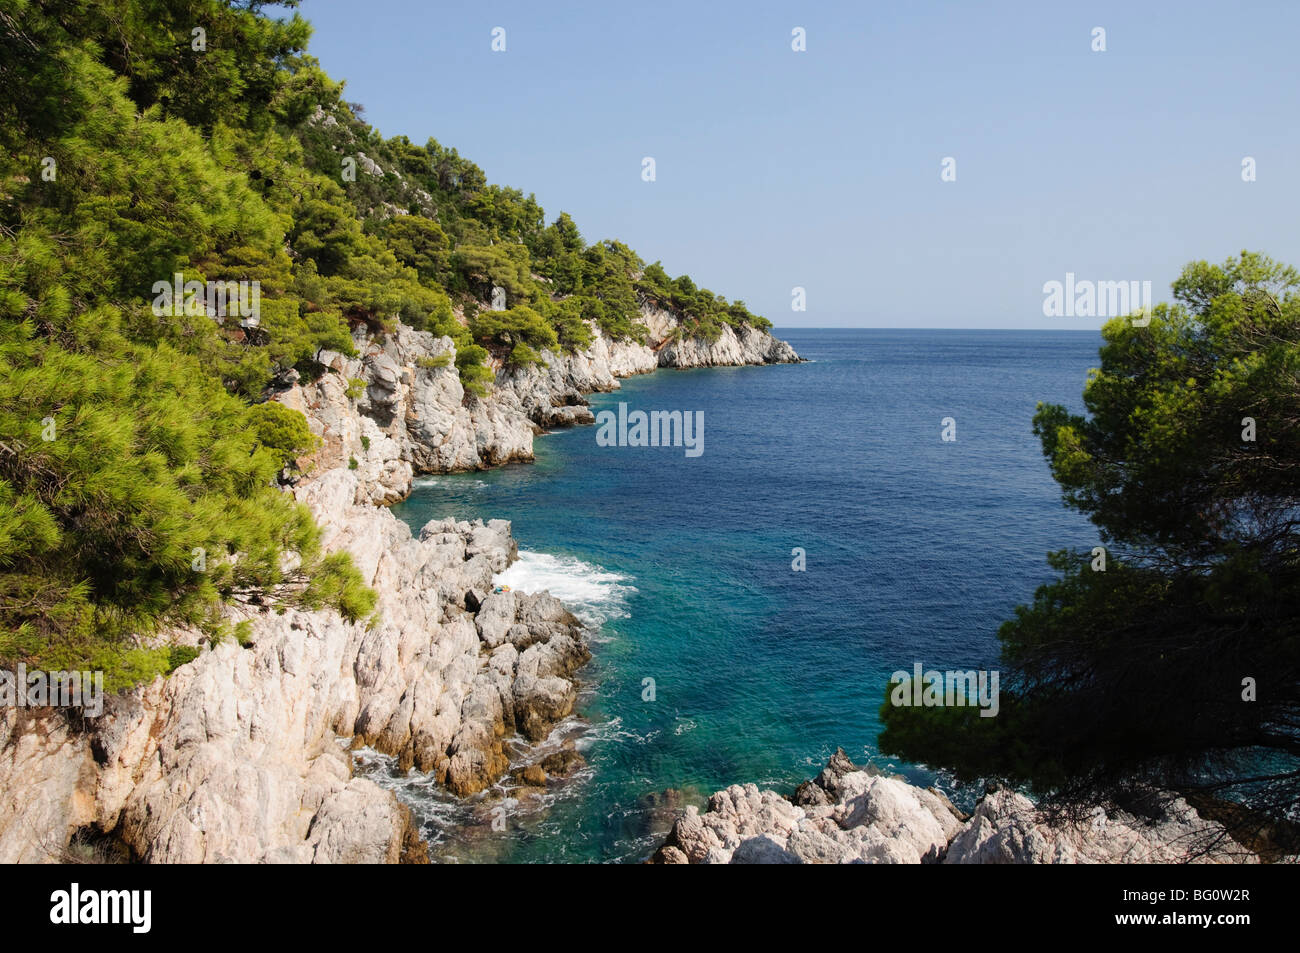 Près de Agnotas, Skopelos, Sporades, îles grecques, Grèce, Europe Photo Stock